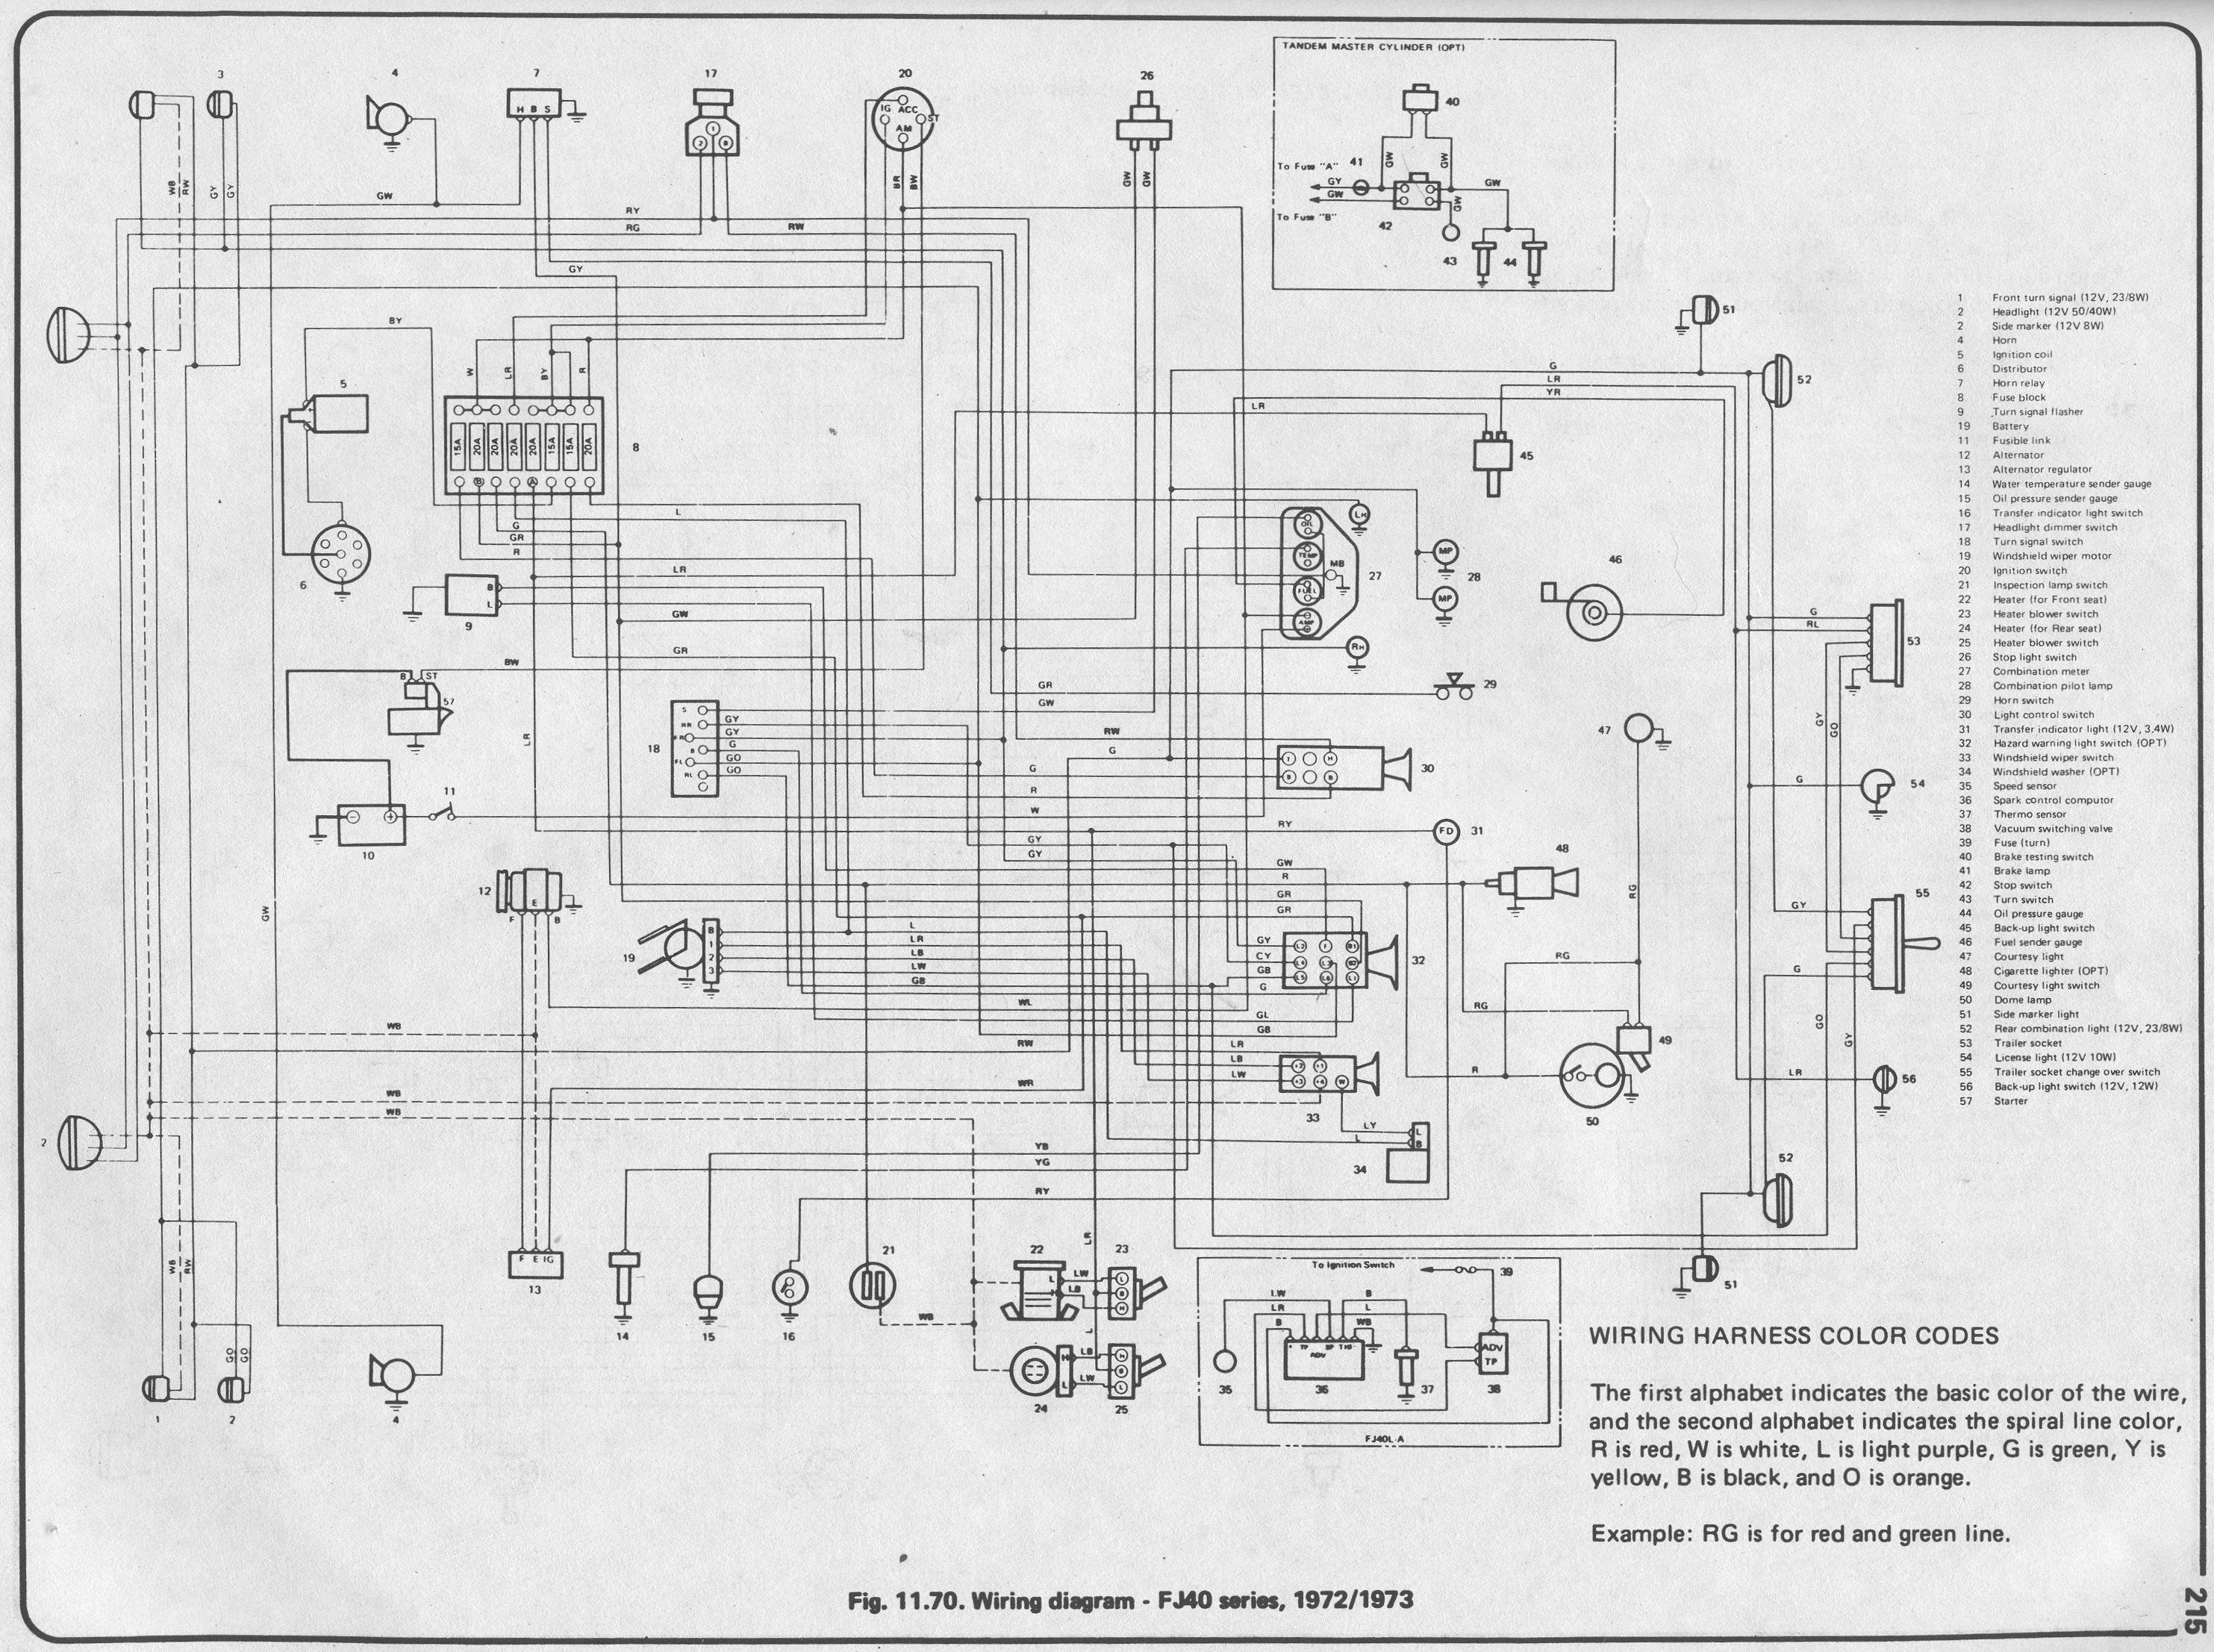 1967 international pickup wiring diagram